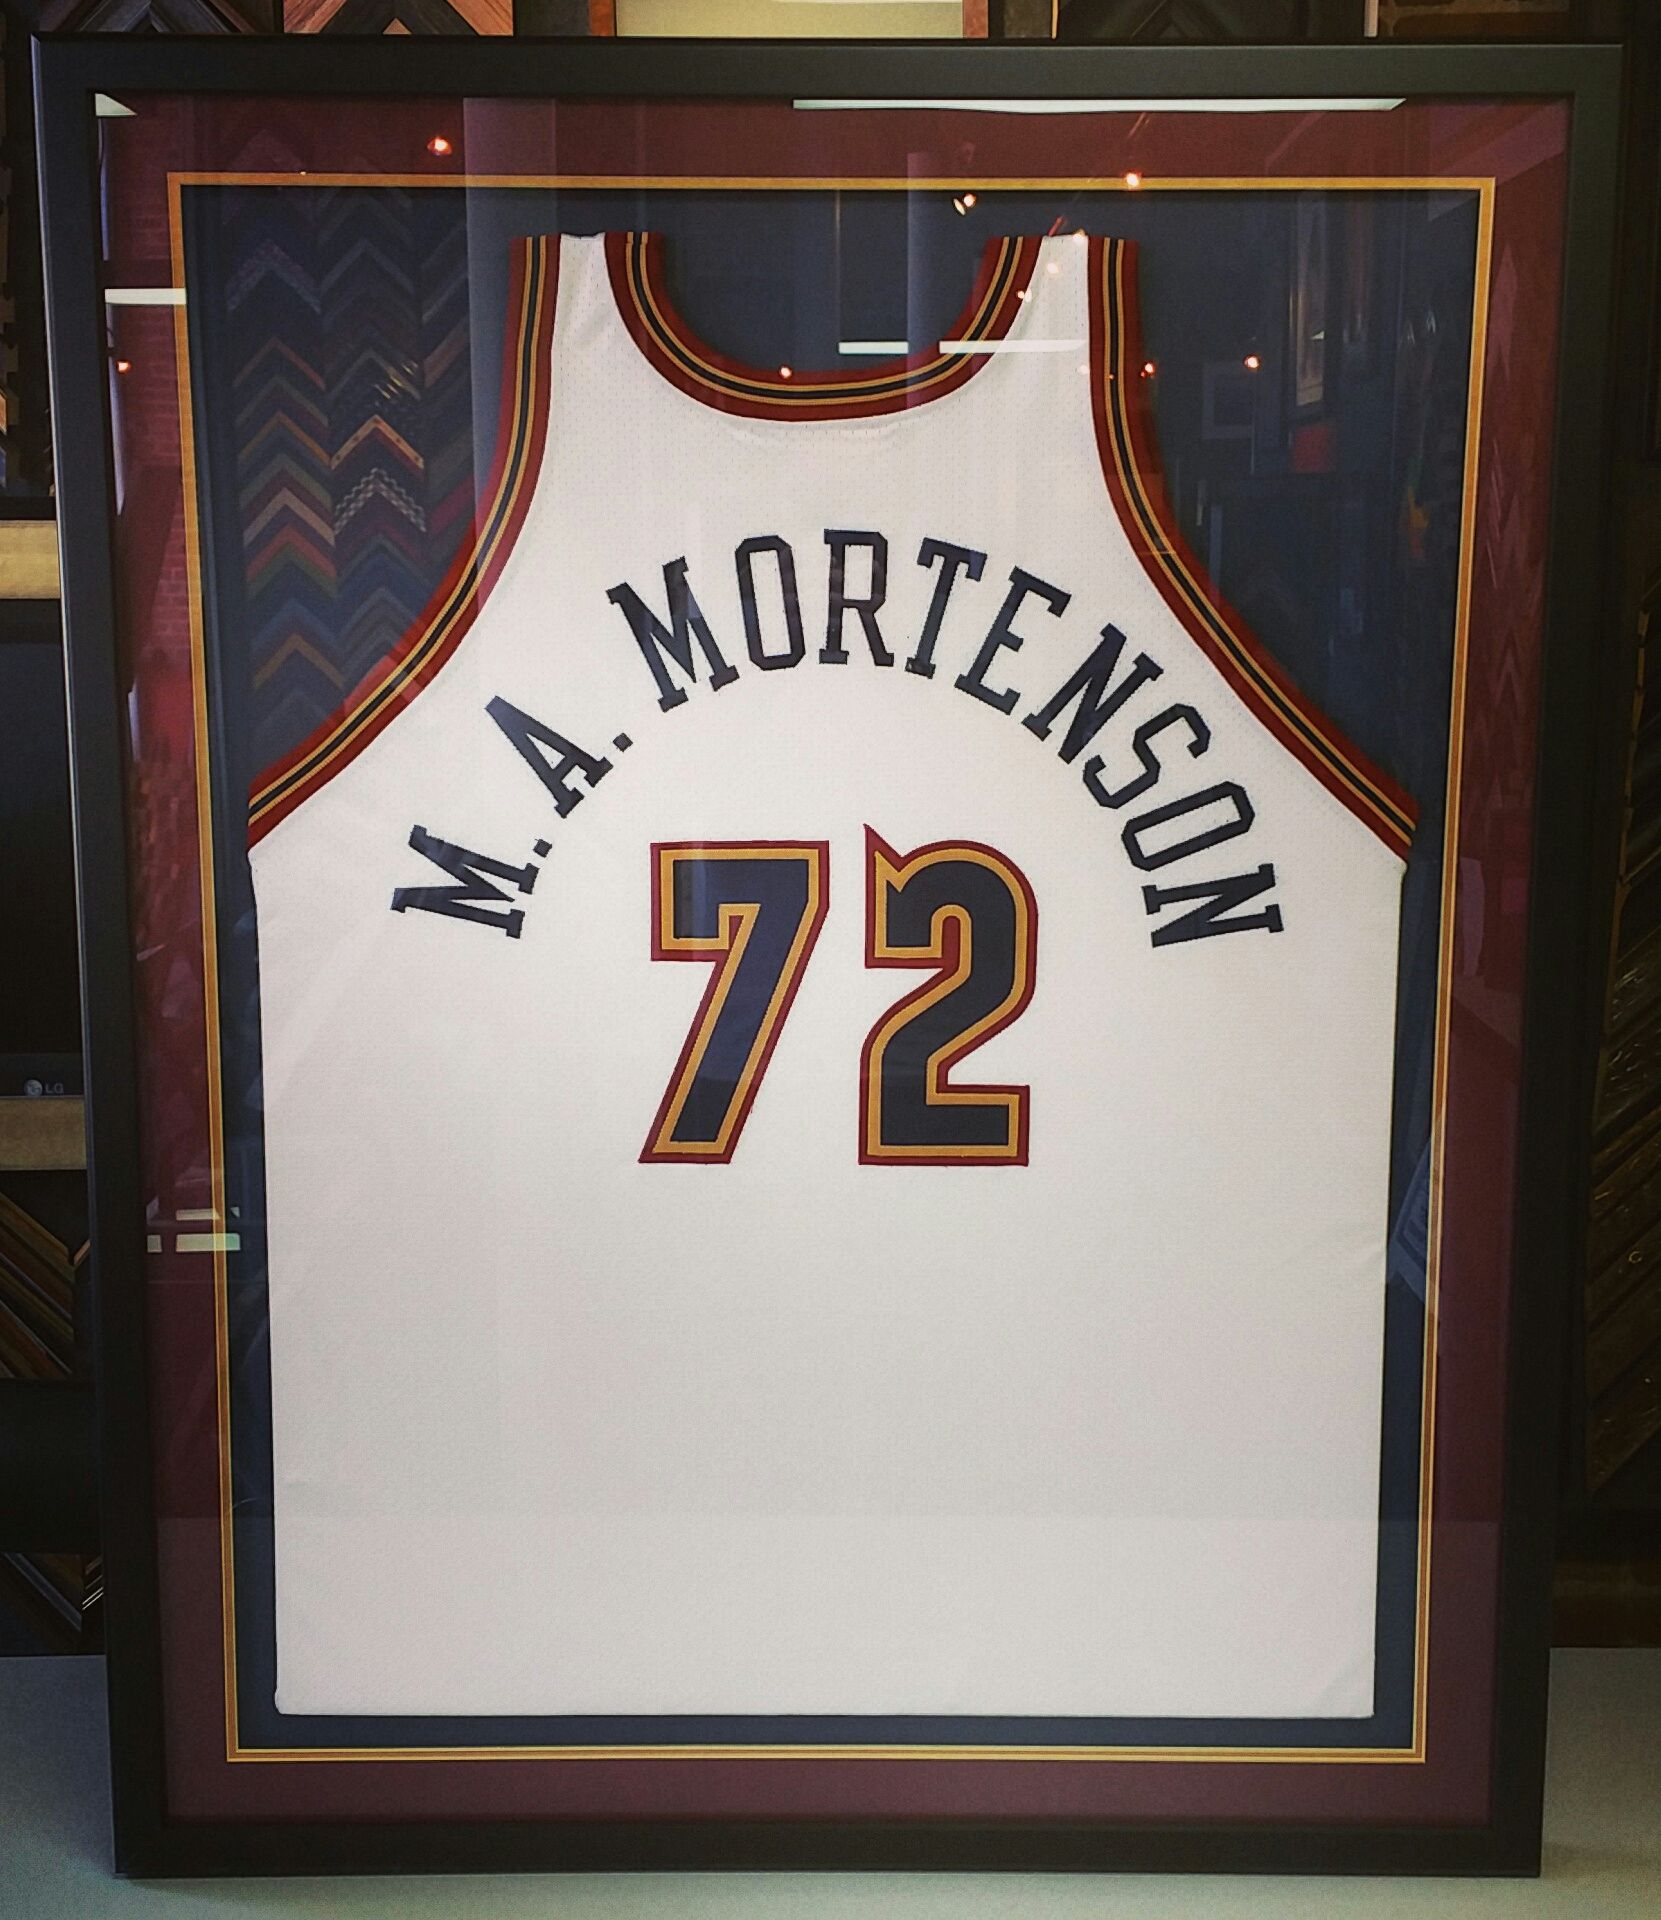 Jersey 4 of 5 out the door for Mortenson Construction! Come see us ...